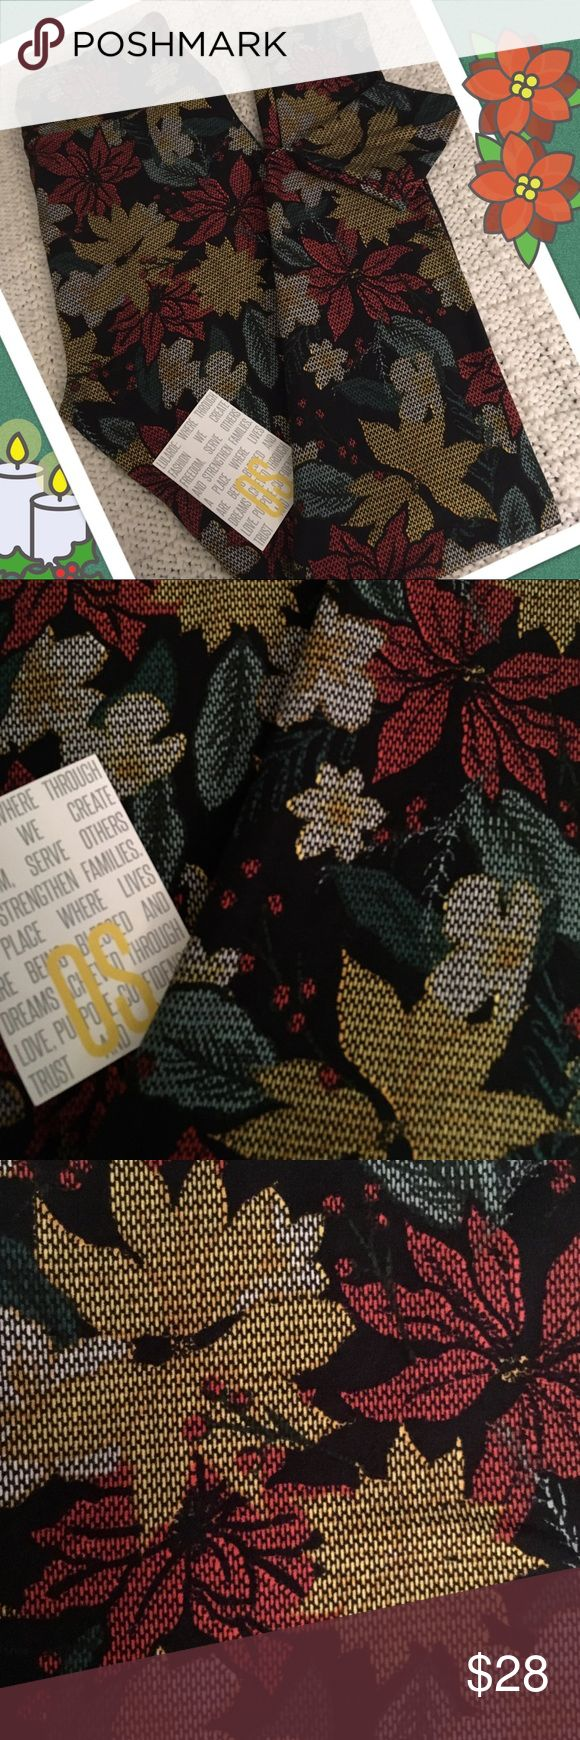 🌺Poinsettias! LulaRoe One Size Leggings!🌺 🌺LulaRoe One Size Leggings ~ Festive Flowers! ~ These bottoms have a black base that's full of festive flowers ~ You'll be sitting pretty in this poinsettia pair!🌺 *Cross posted to another site                                                                         All leggings are bought new from consultants and arrive with and without tags. Each pair is inspected and never, ever worn!:-) LuLaRoe Pants Leggings